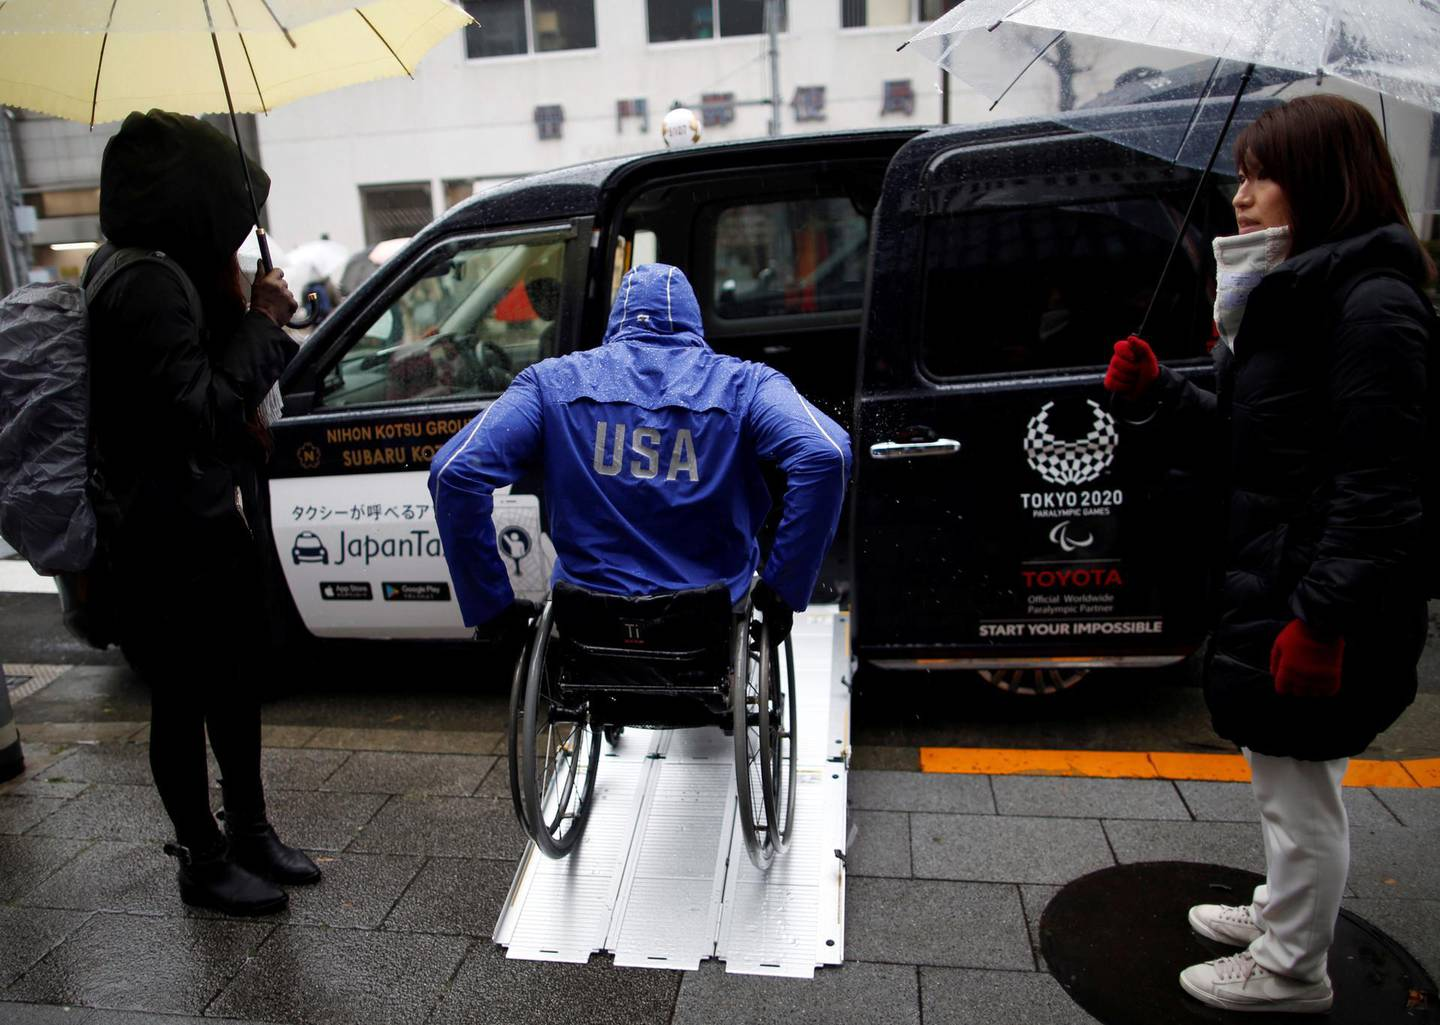 Paralympian Daniel Romanchuk of the U.S. enters a Toyota Motor Corp.'s JPN Taxi during his tour of Tokyo, Japan March 4, 2019. Picture taken March 4, 2019.   REUTERS/Issei Kato